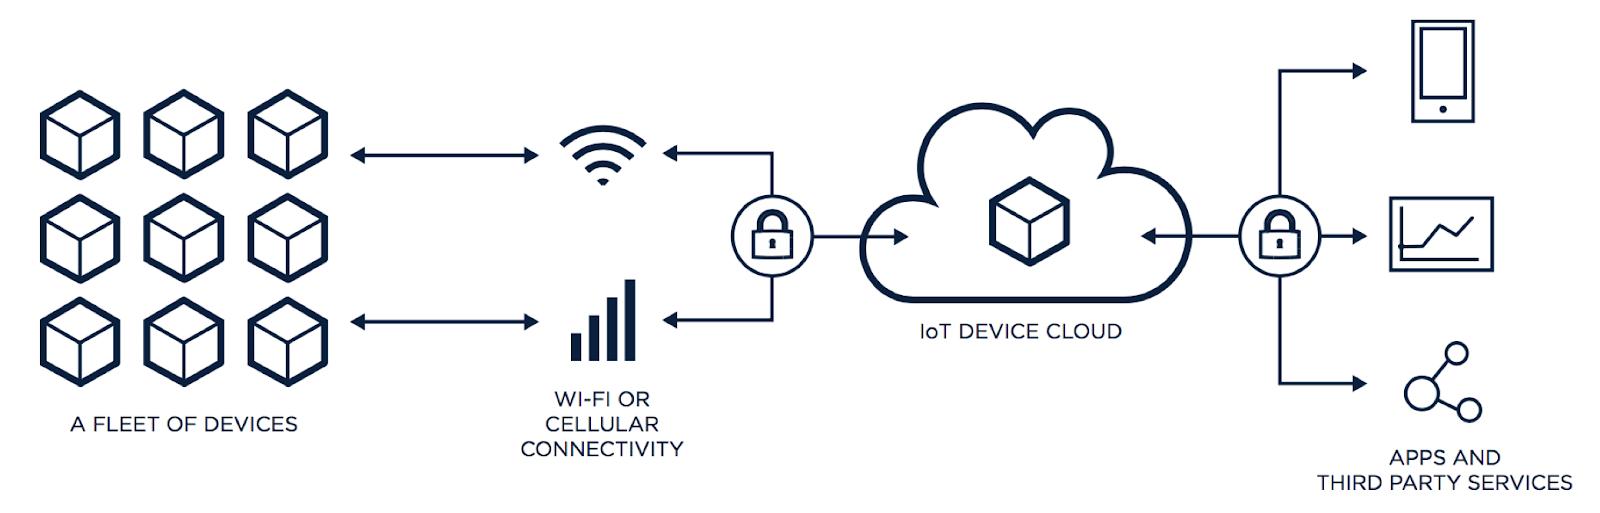 How to Choose the Right IoT Platform: The Ultimate Checklist - By